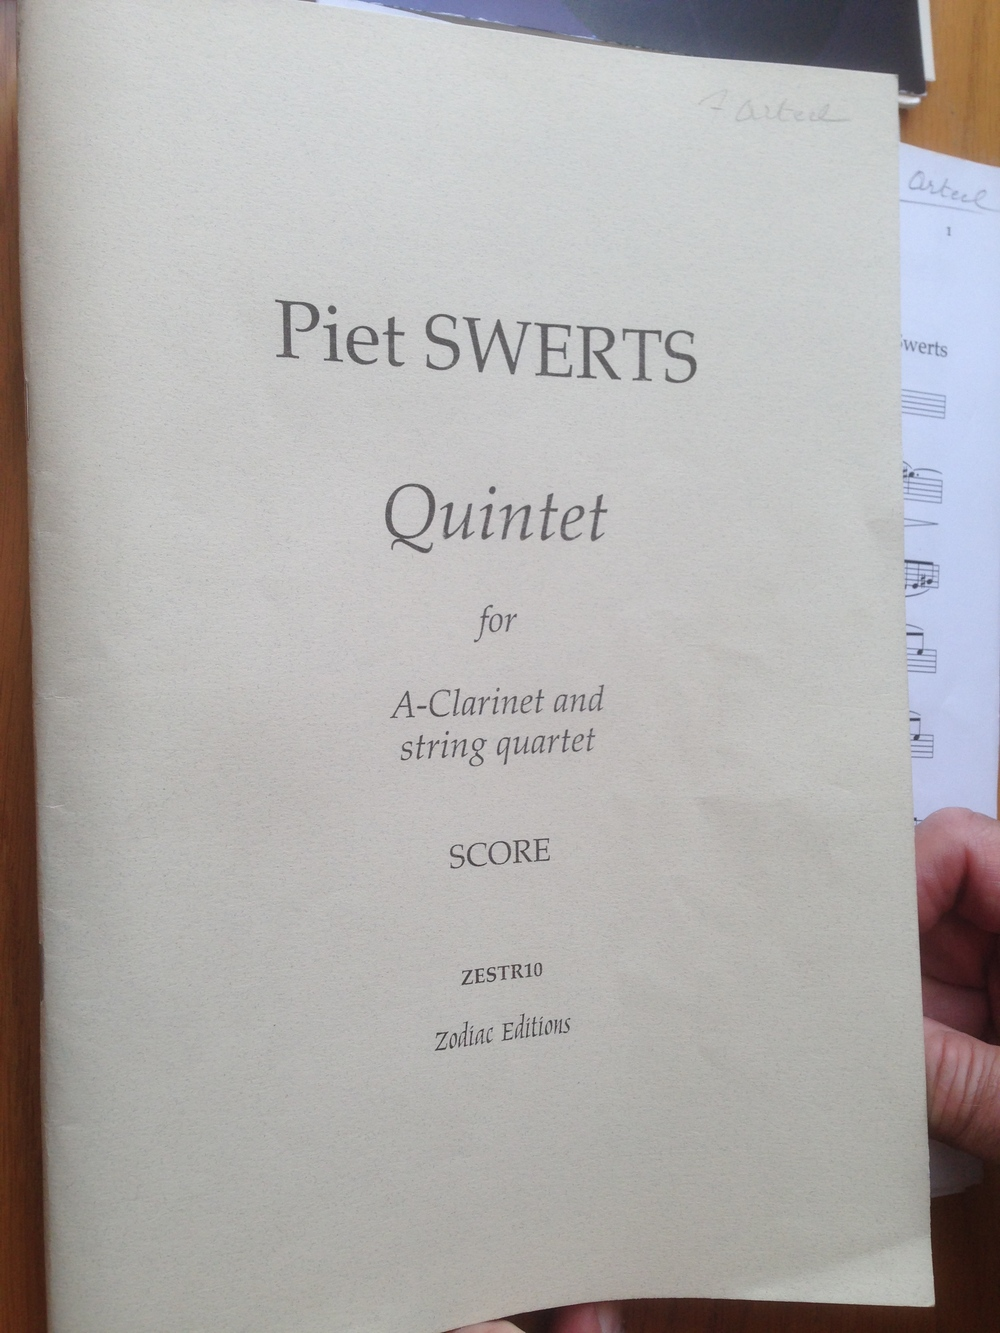 Each year, I discover several hidden gems in our repertoire. This year, my dear friend and mentor Freddy Arteel, brought this marvelous work by the Flemish composer Piet Swerts.